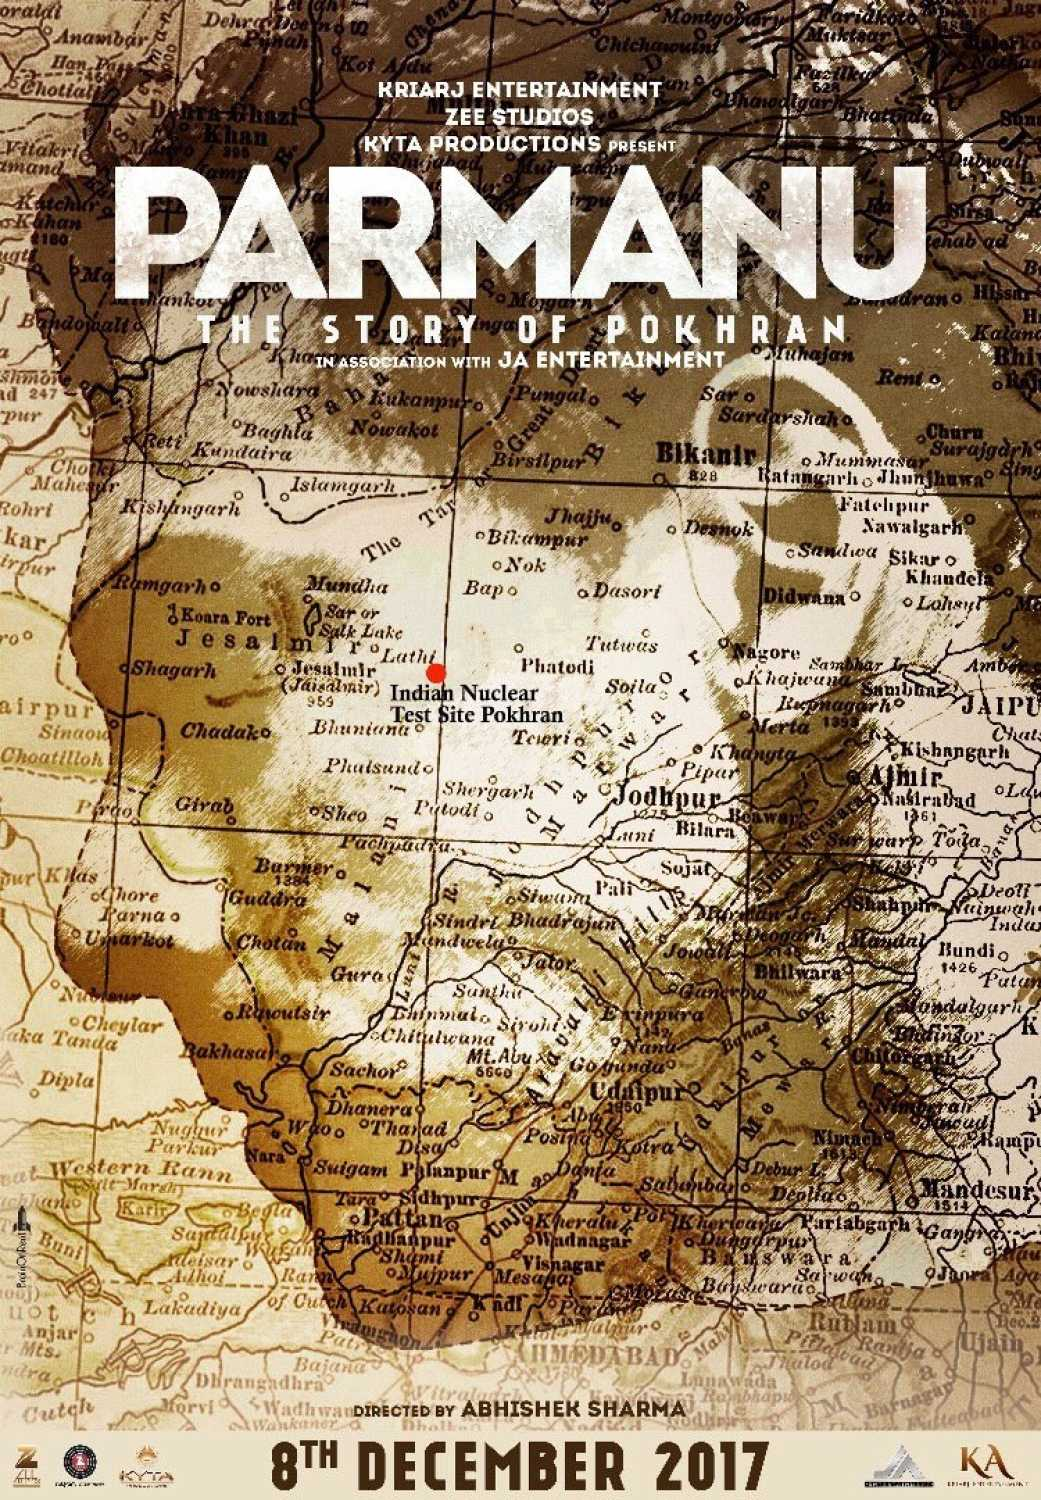 Parmanu%20The%20Story%20of%20Pokhran%202018.1 دانلود فیلم Parmanu: The Story of Pokhran 2018